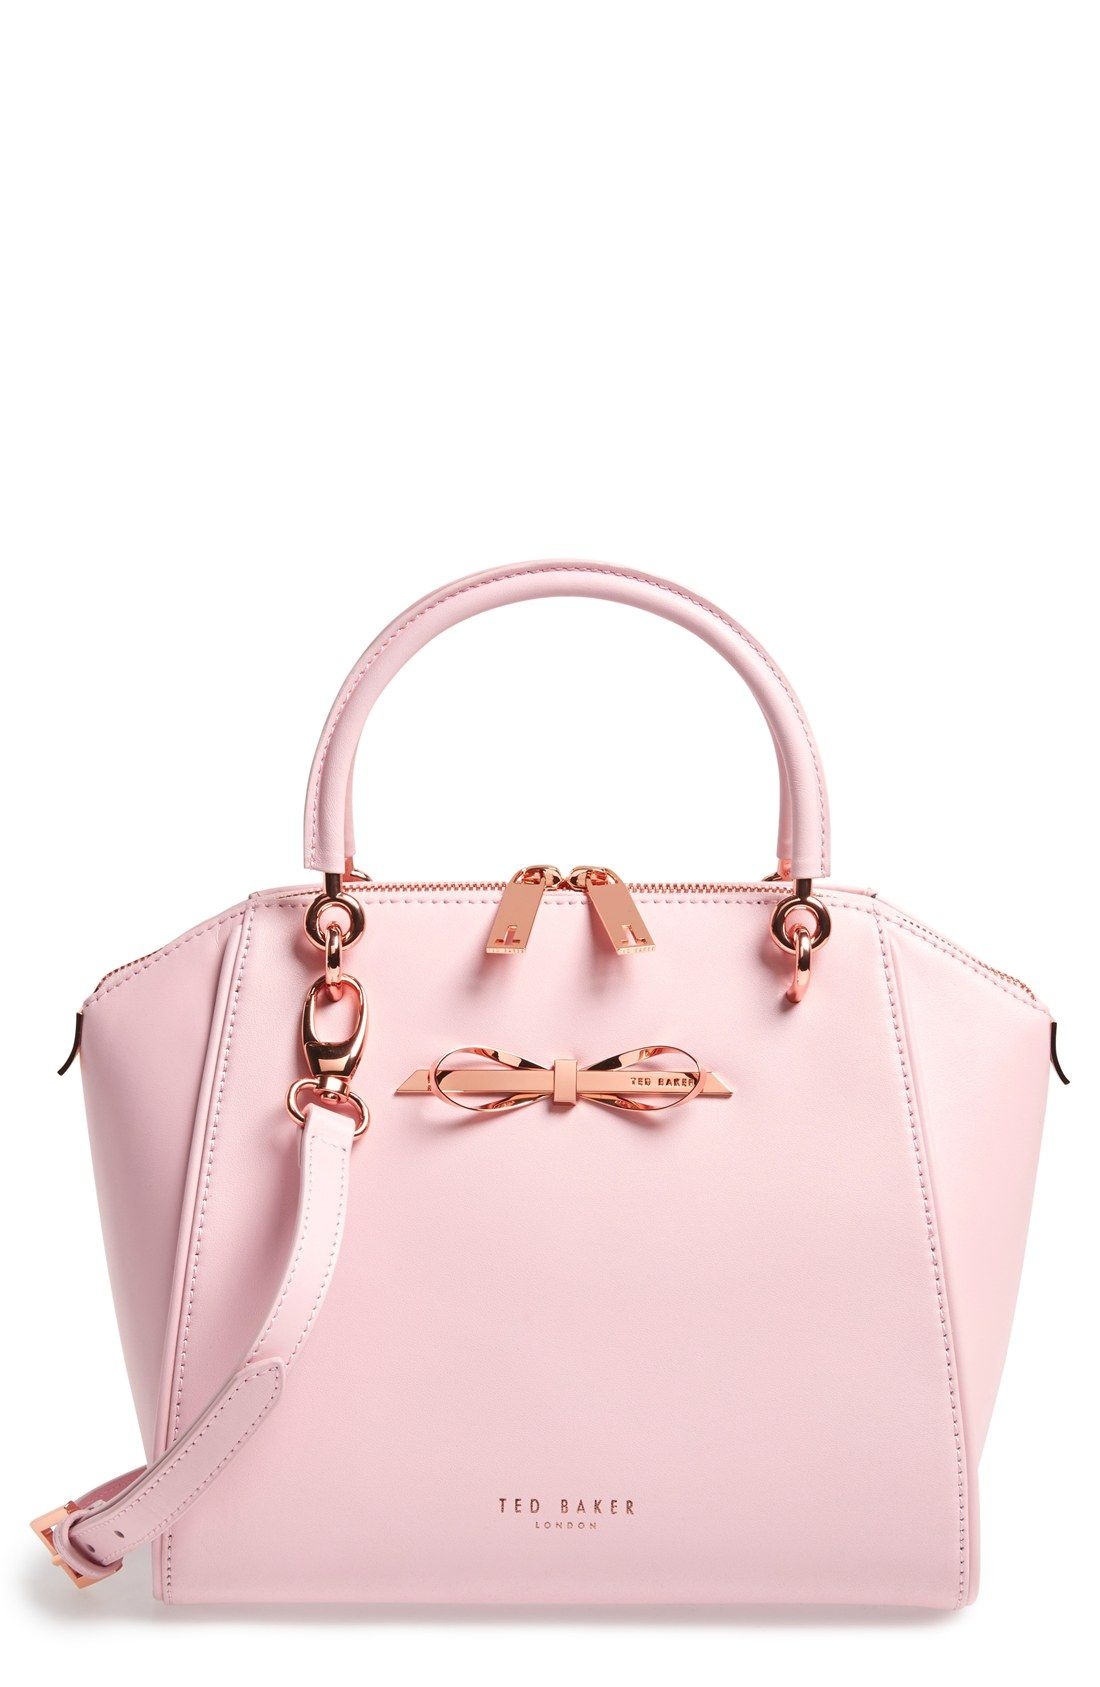 27386e535cc94a Adding this pretty pink Ted Baker tote to the wishlist.